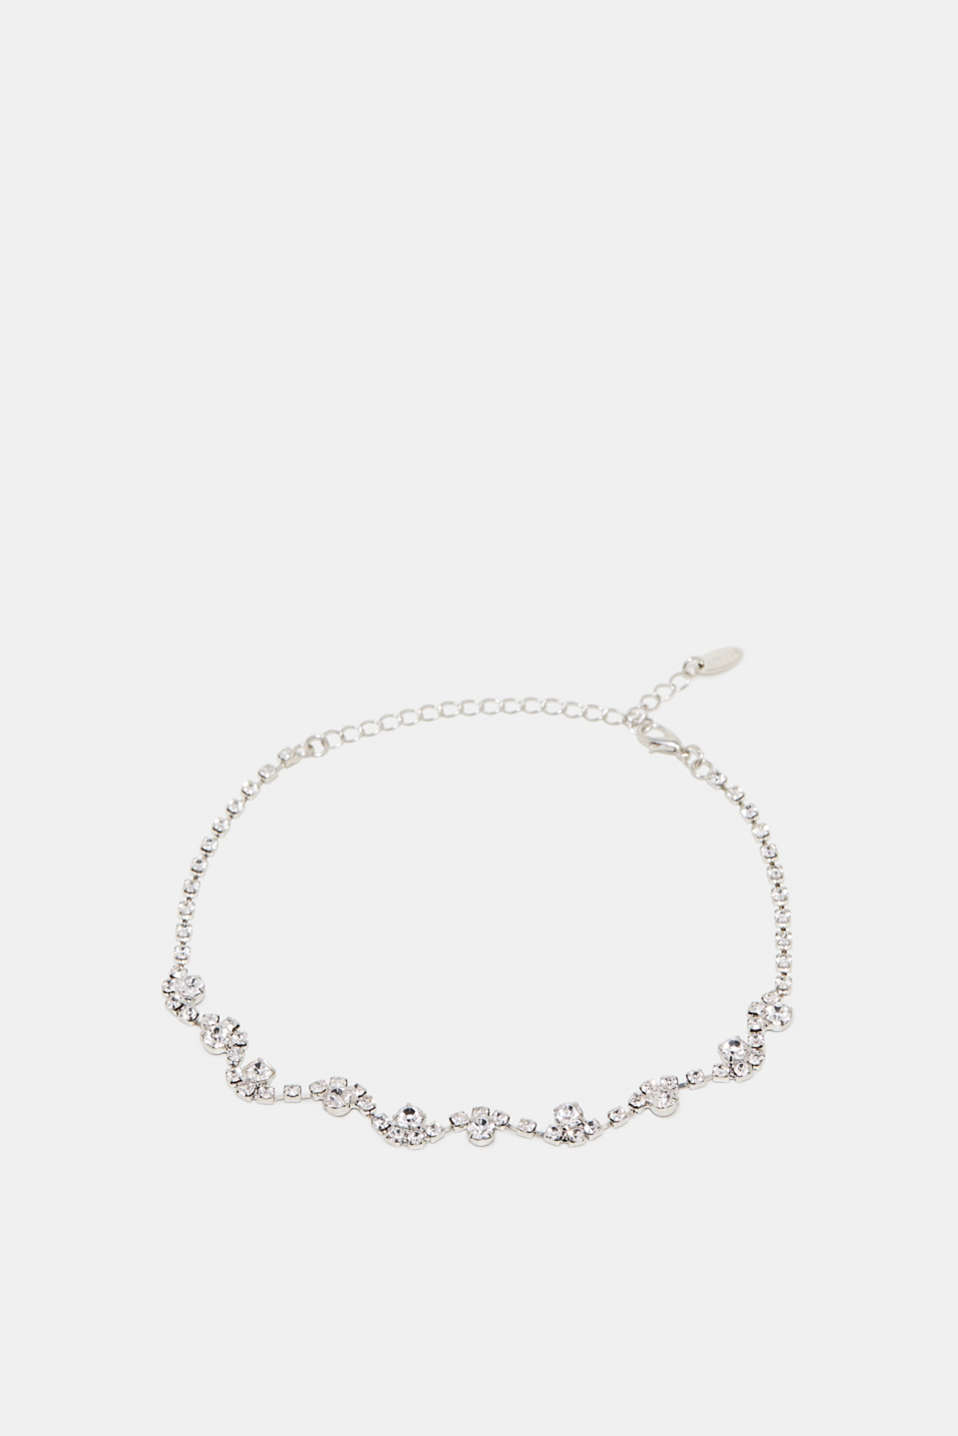 Esprit - Short necklace with rhinestones